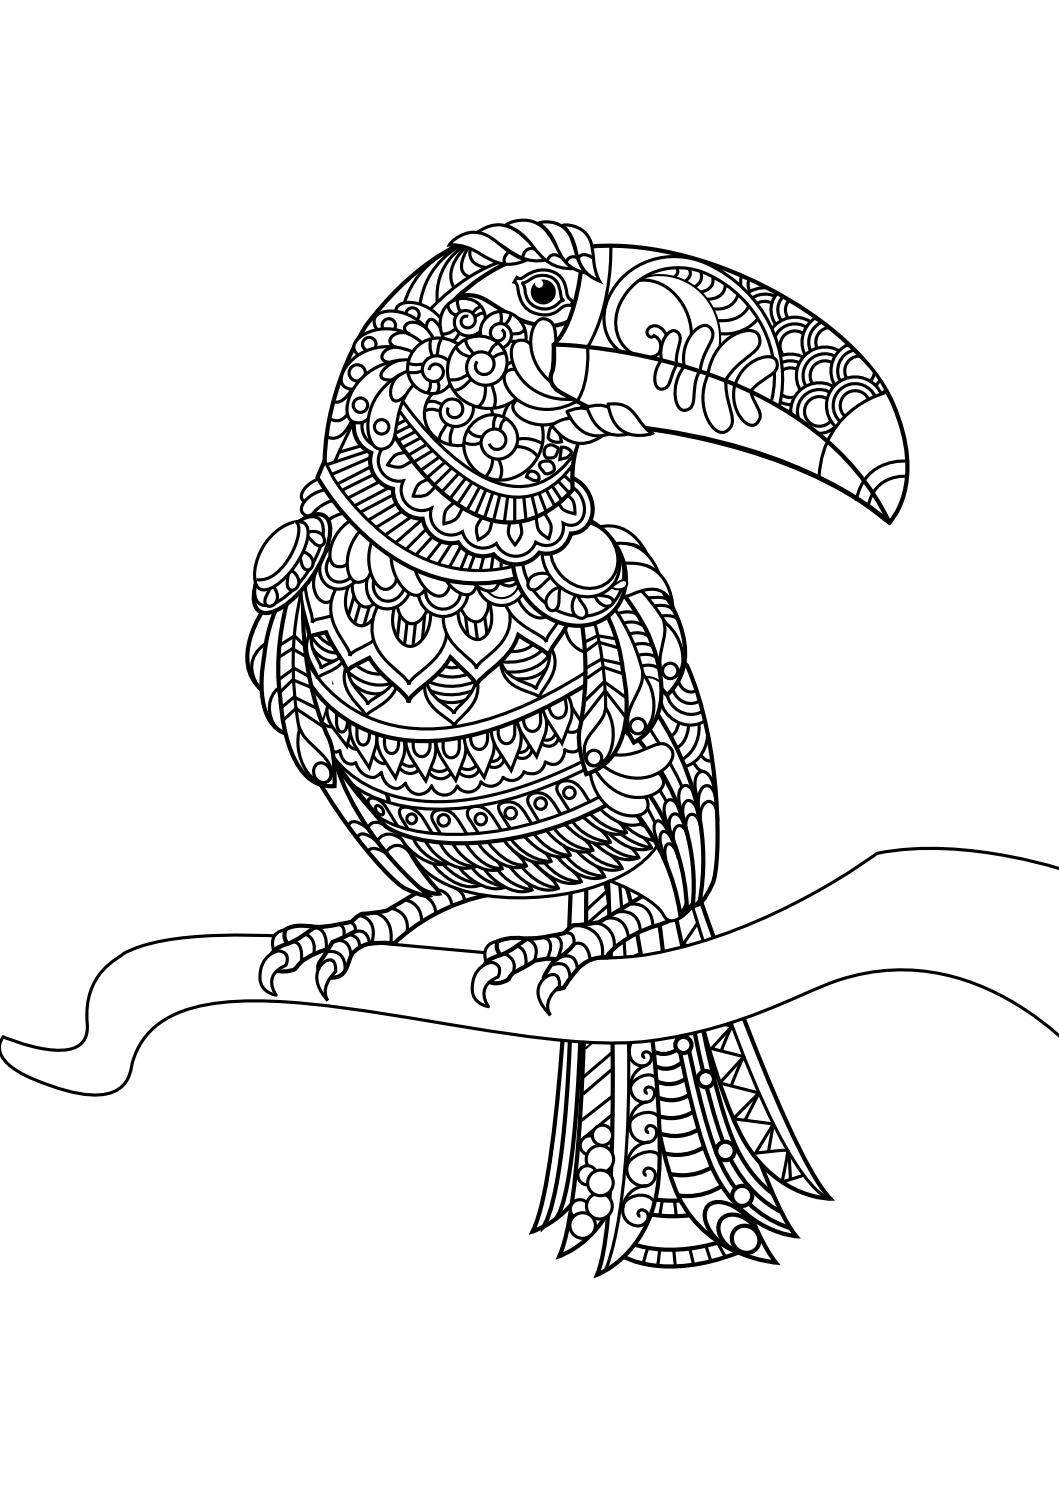 1059x1497 Animal Coloring Pages Pdf Mandalas, Colorear Y Mandalas Animales